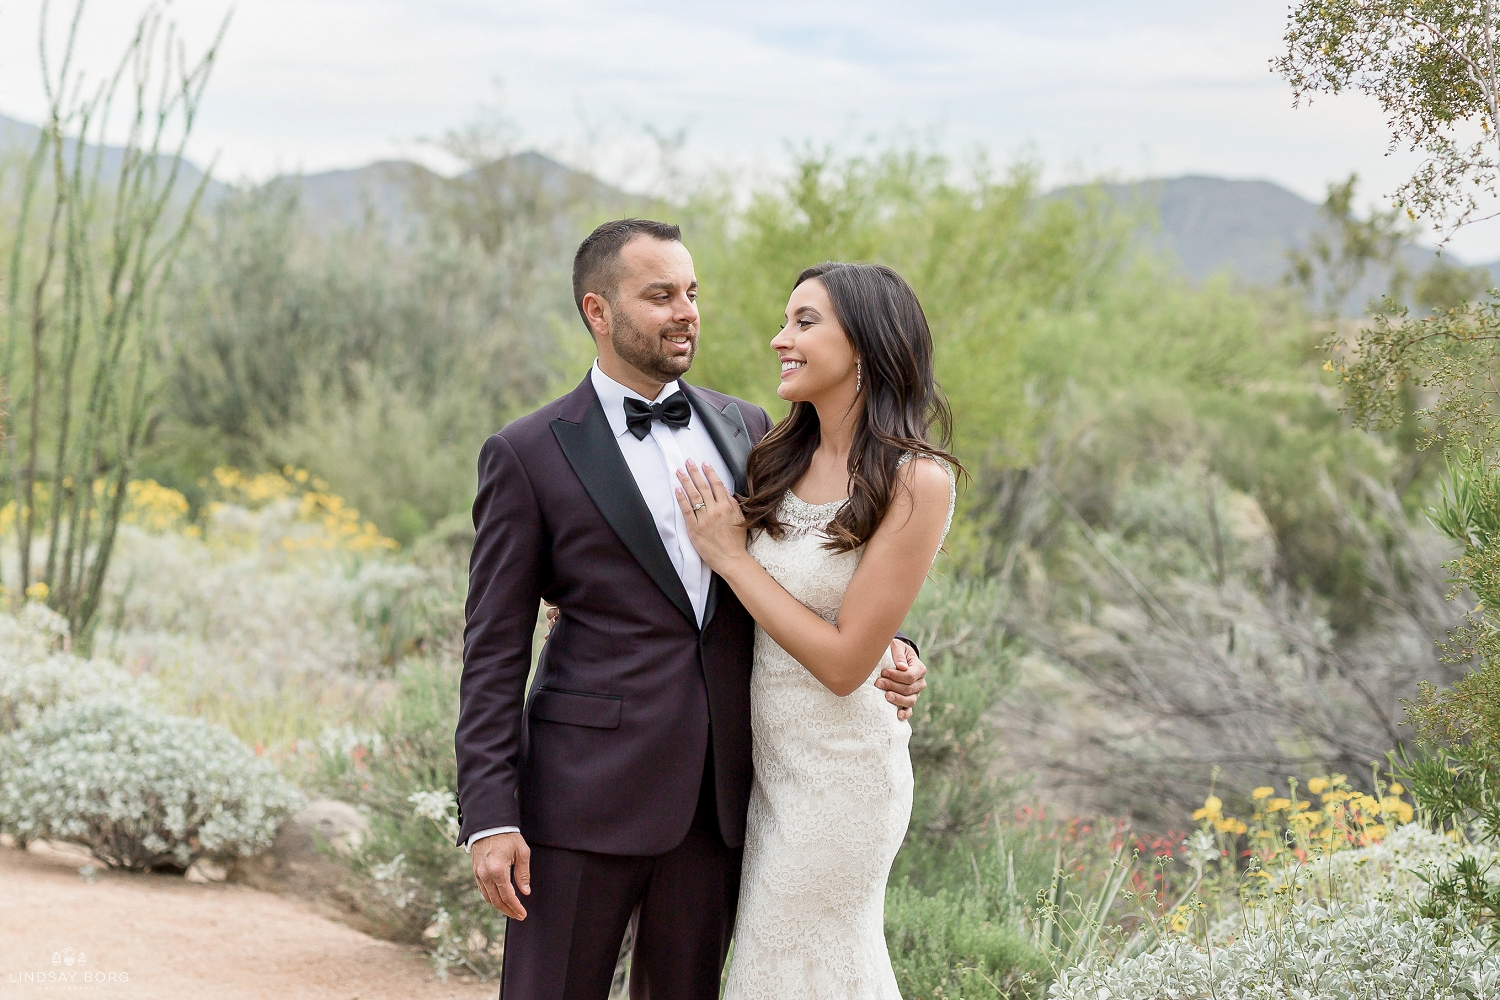 Sheyan + Shelbi - Scottsdale, Arizona Wedding